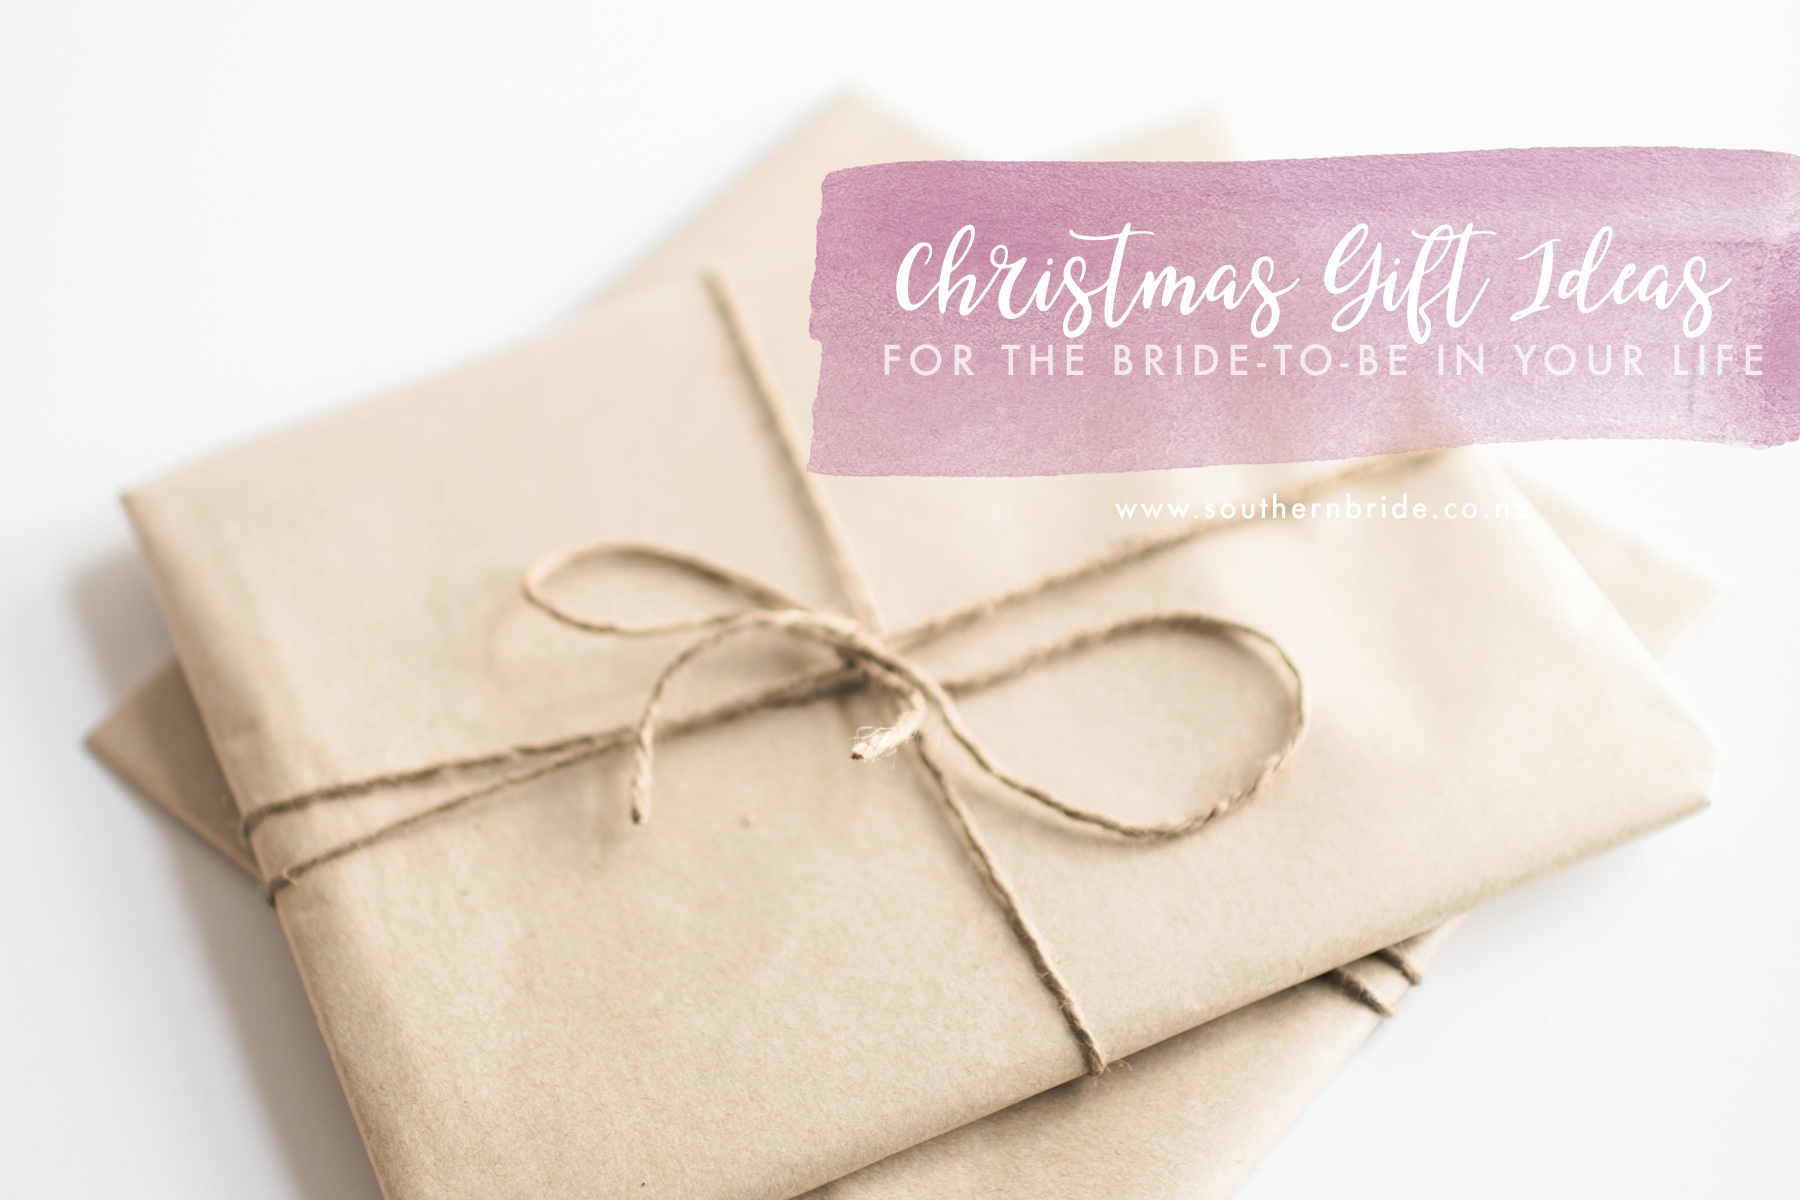 Christmas Gift Ideas for the bride-to-be in your life - Southern Bride